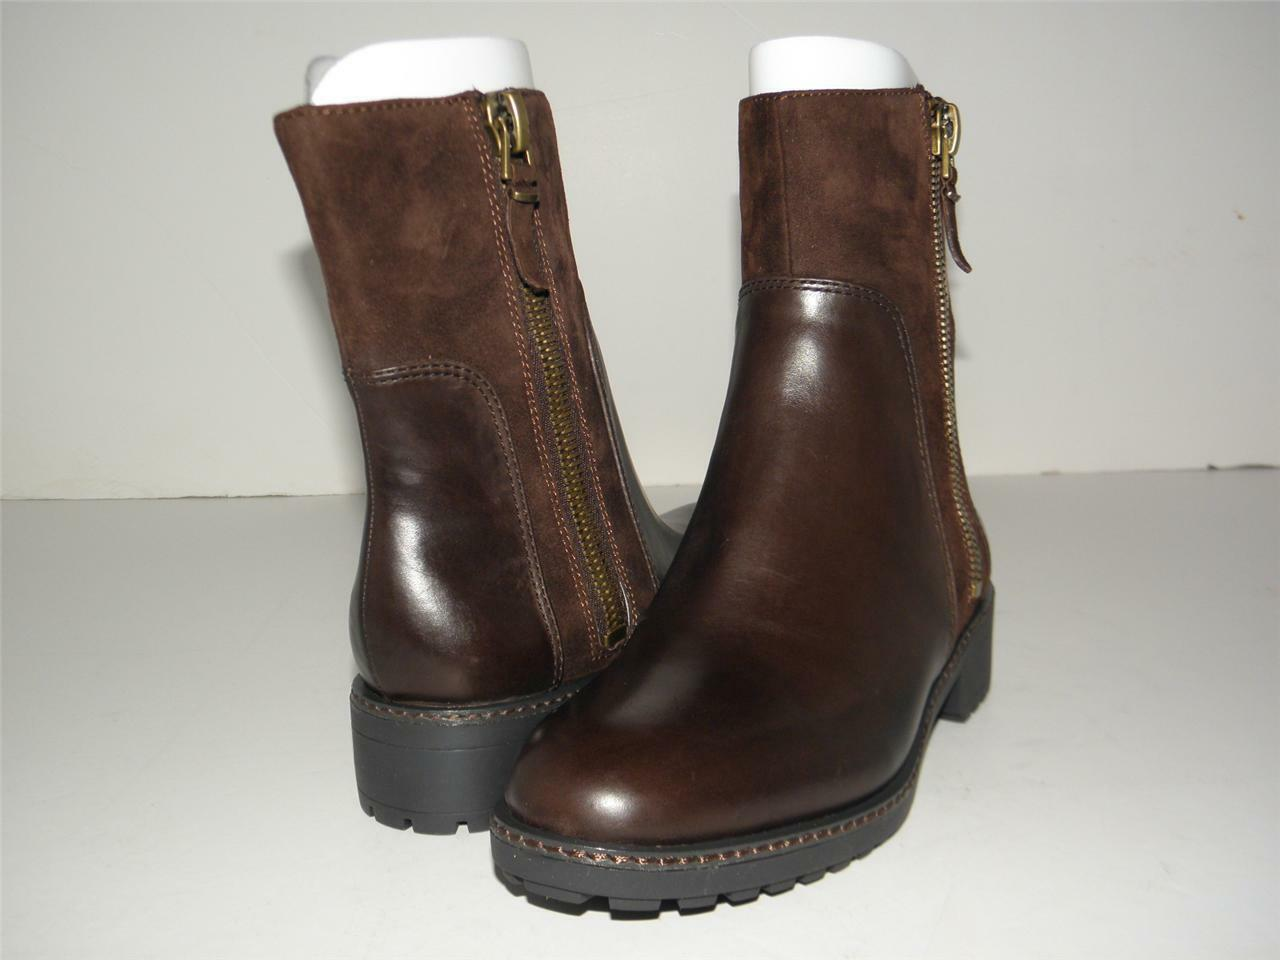 298 NEW VIA SPIGA EARTHA BROWN LEATHER HEELS ANKLE BOOTS SIDE ZIPPER BOOTIE